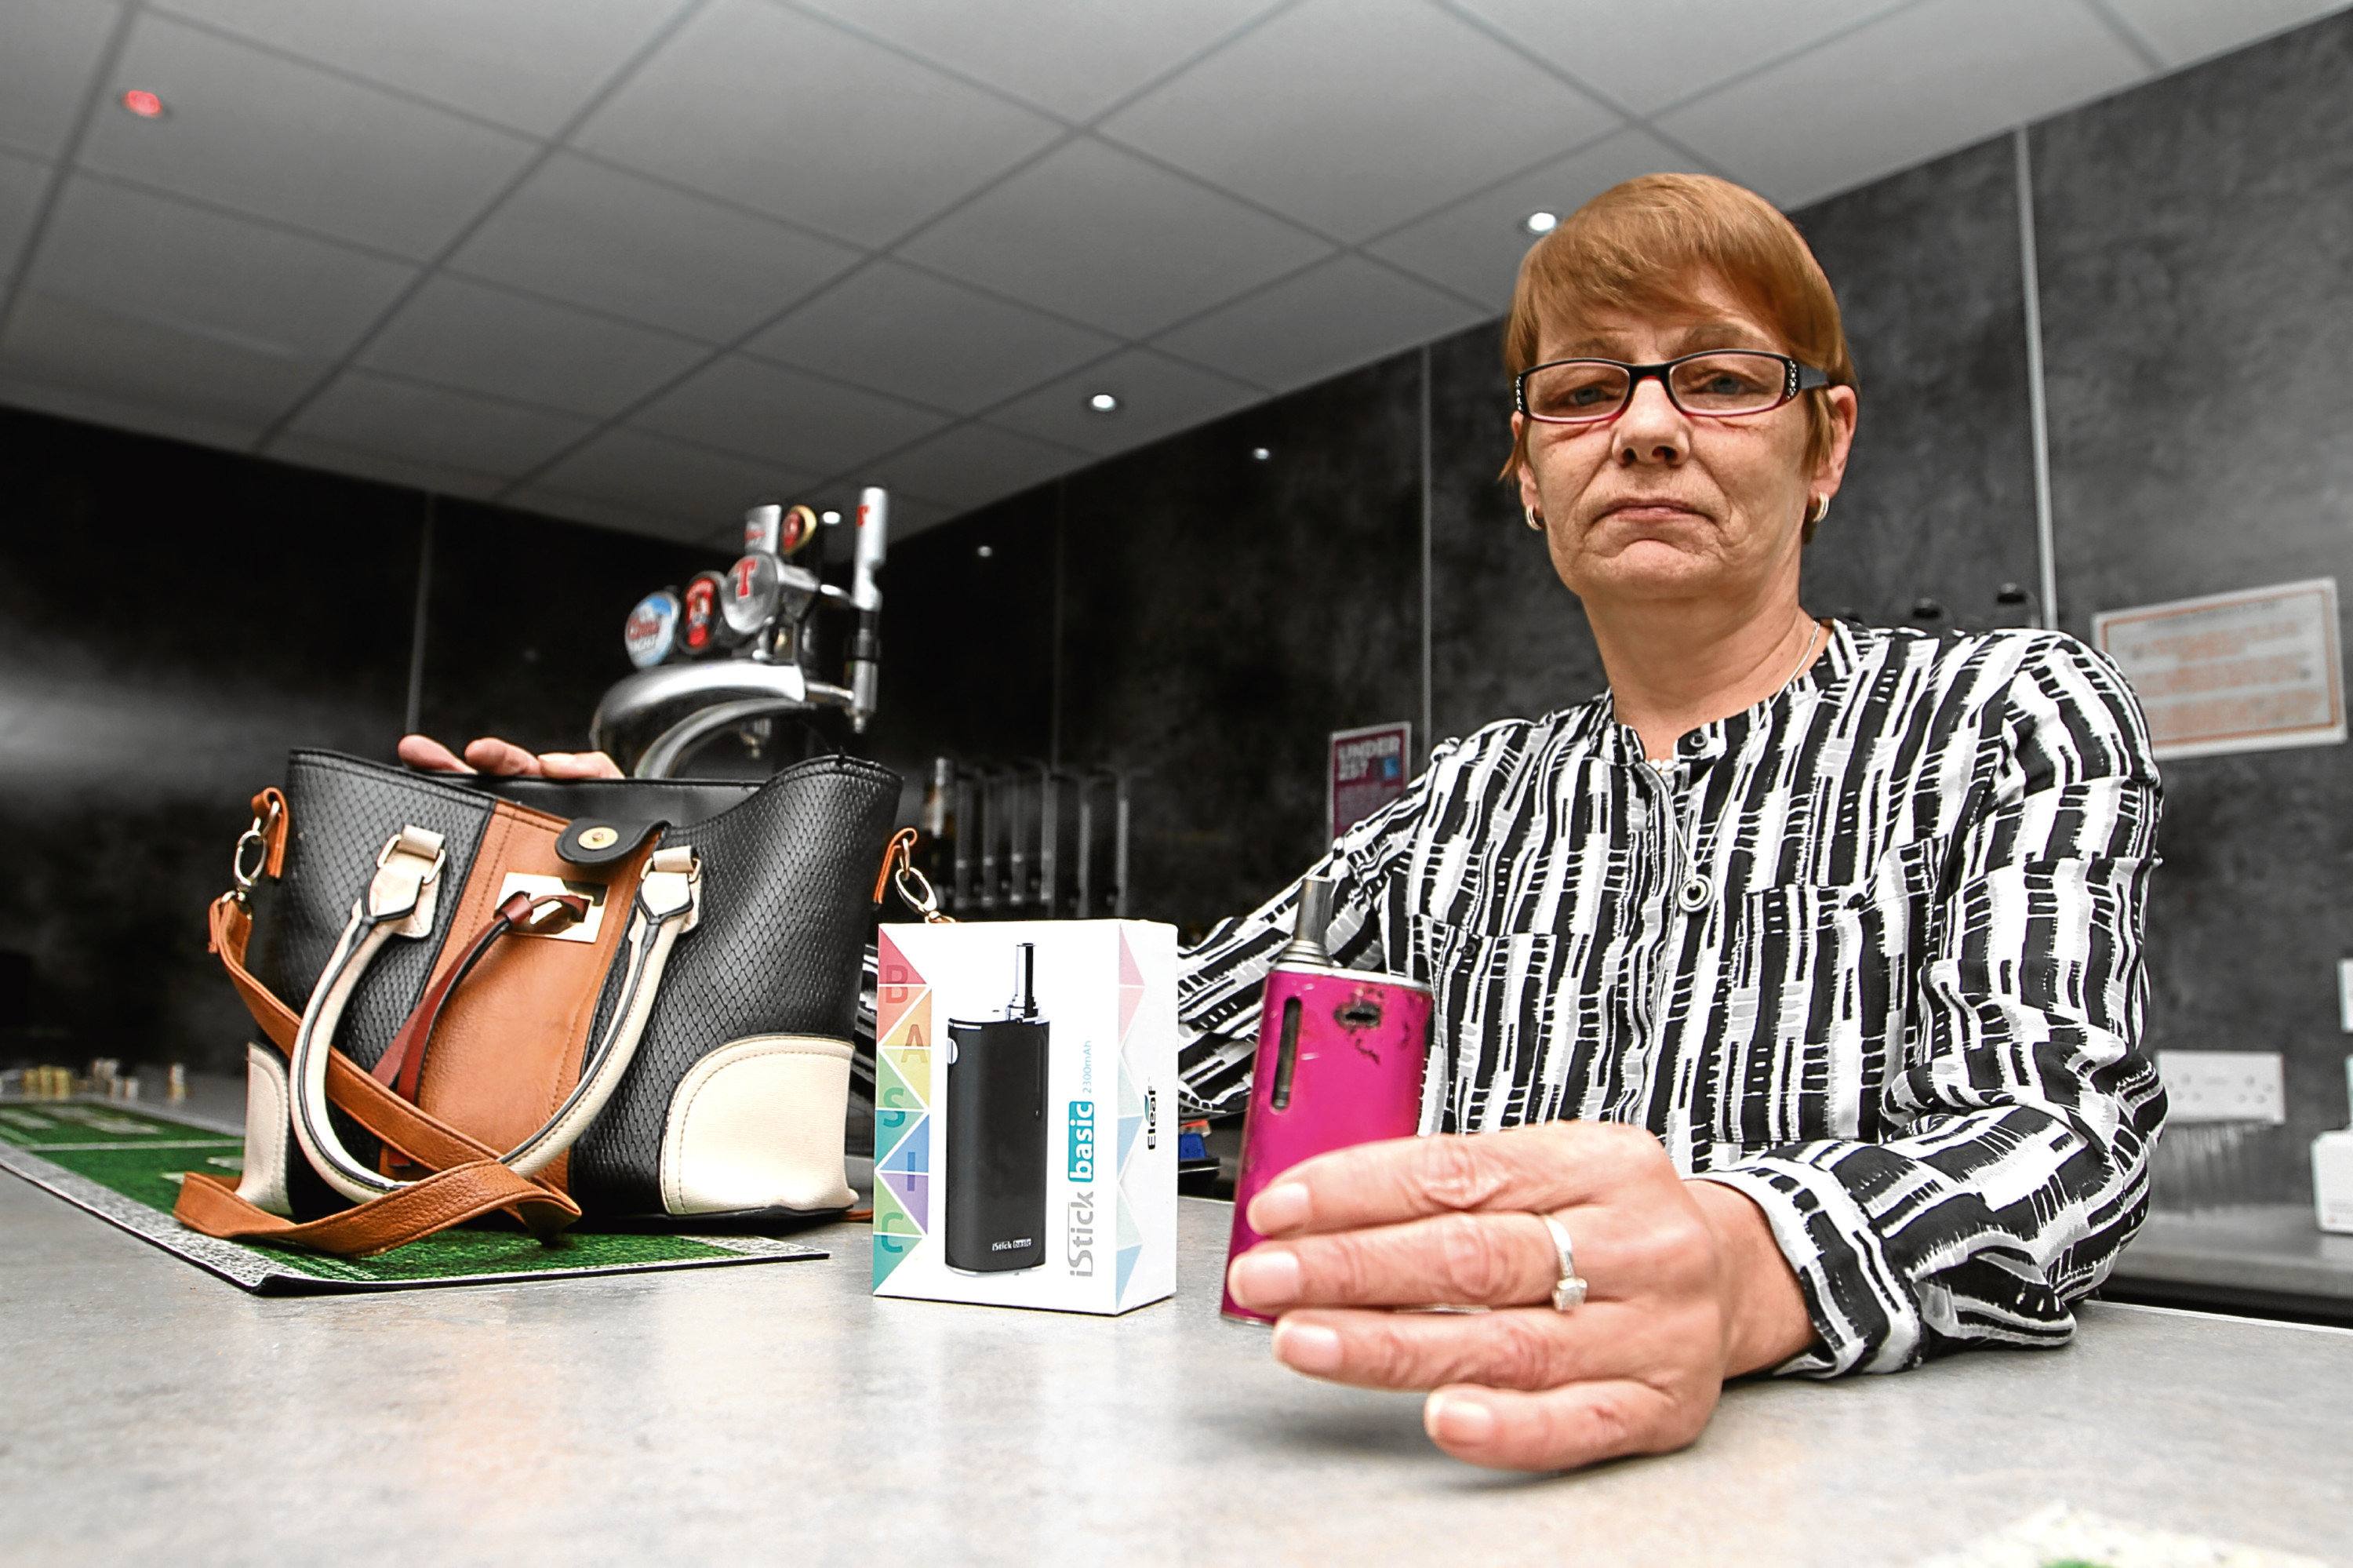 Laura White, manageress of Douglas Sports Club, with her handbag and the e-cigarette lighter.